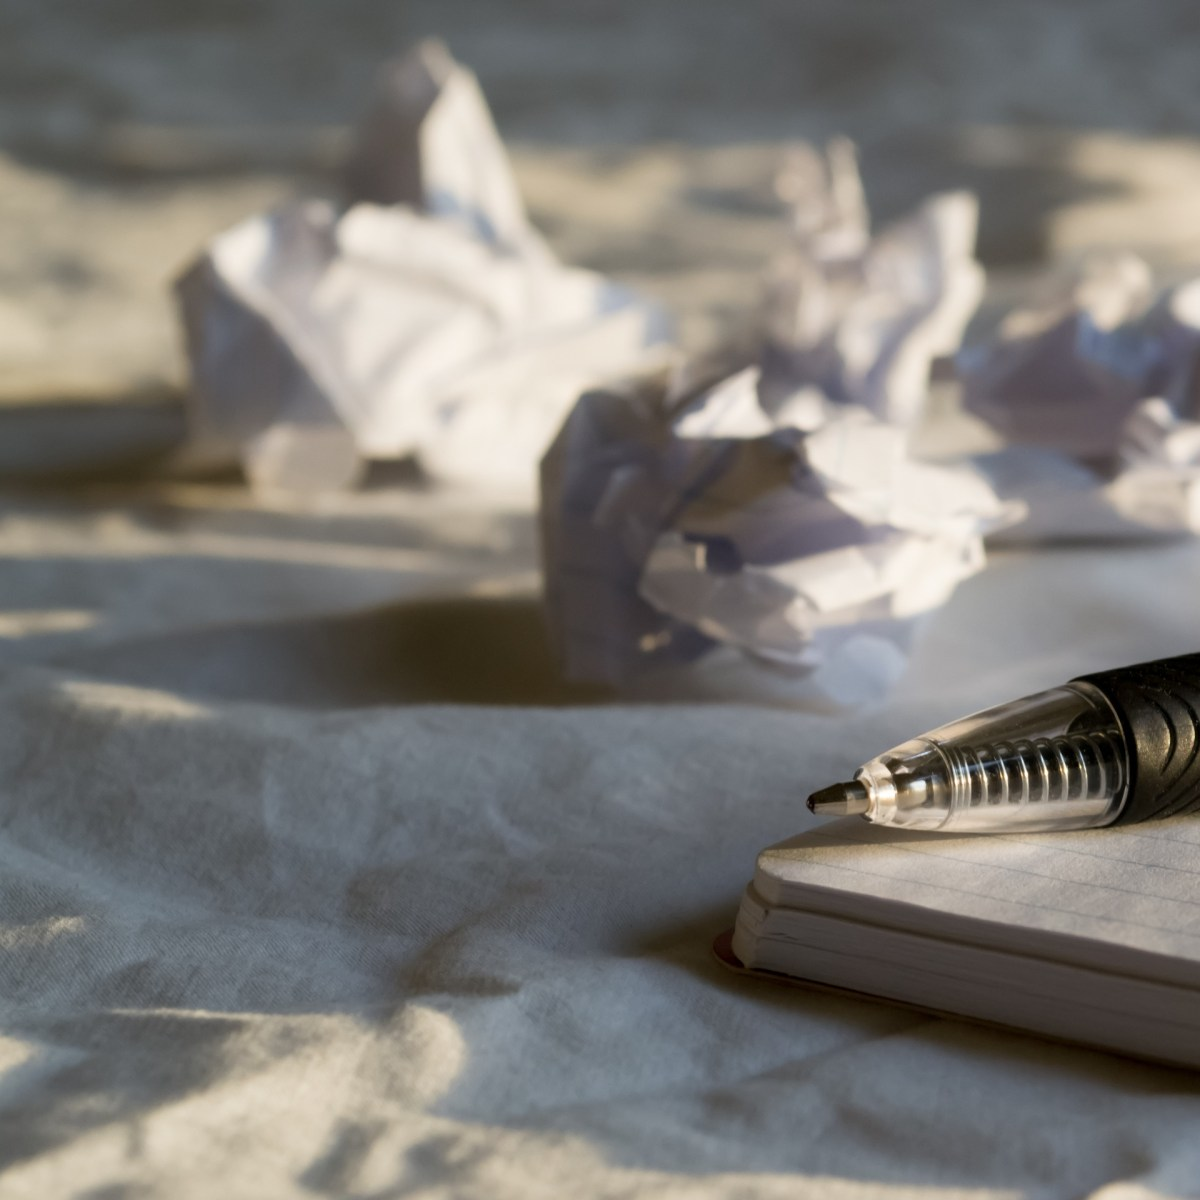 pen and paper and crumbled paper wads